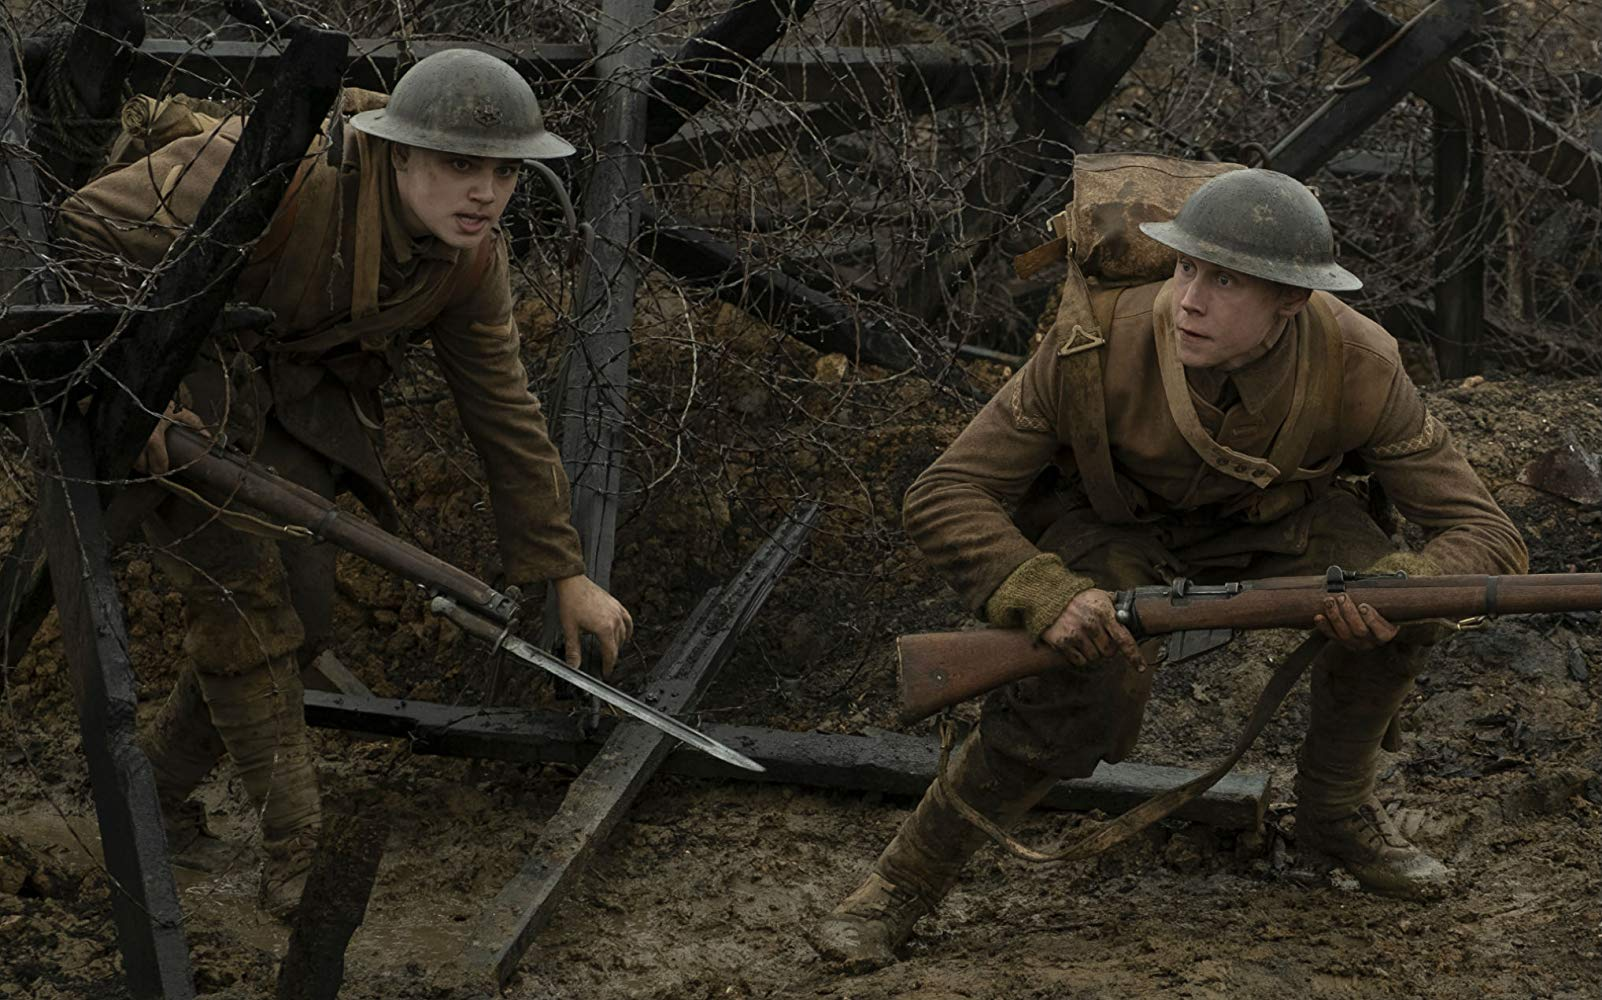 1917 is a harrowing war flick